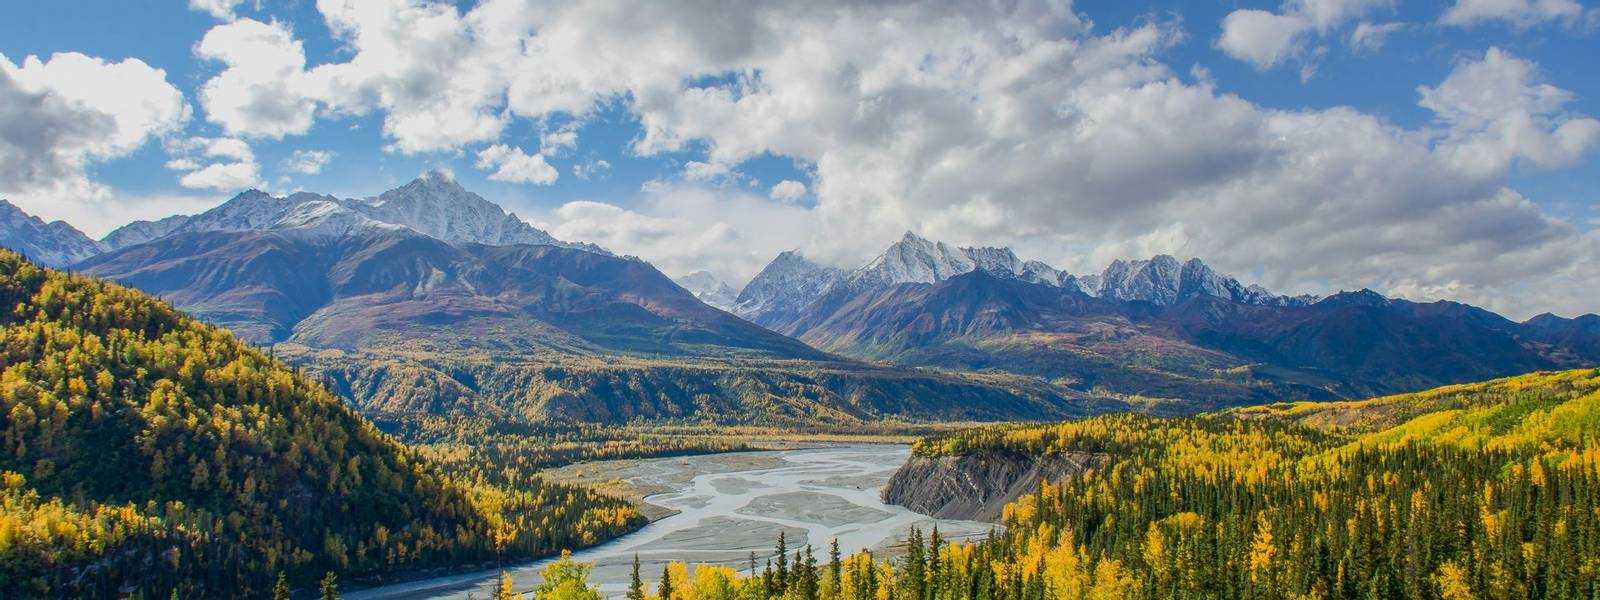 The Matanuska River flows below the Chugach Mountains in Alaska